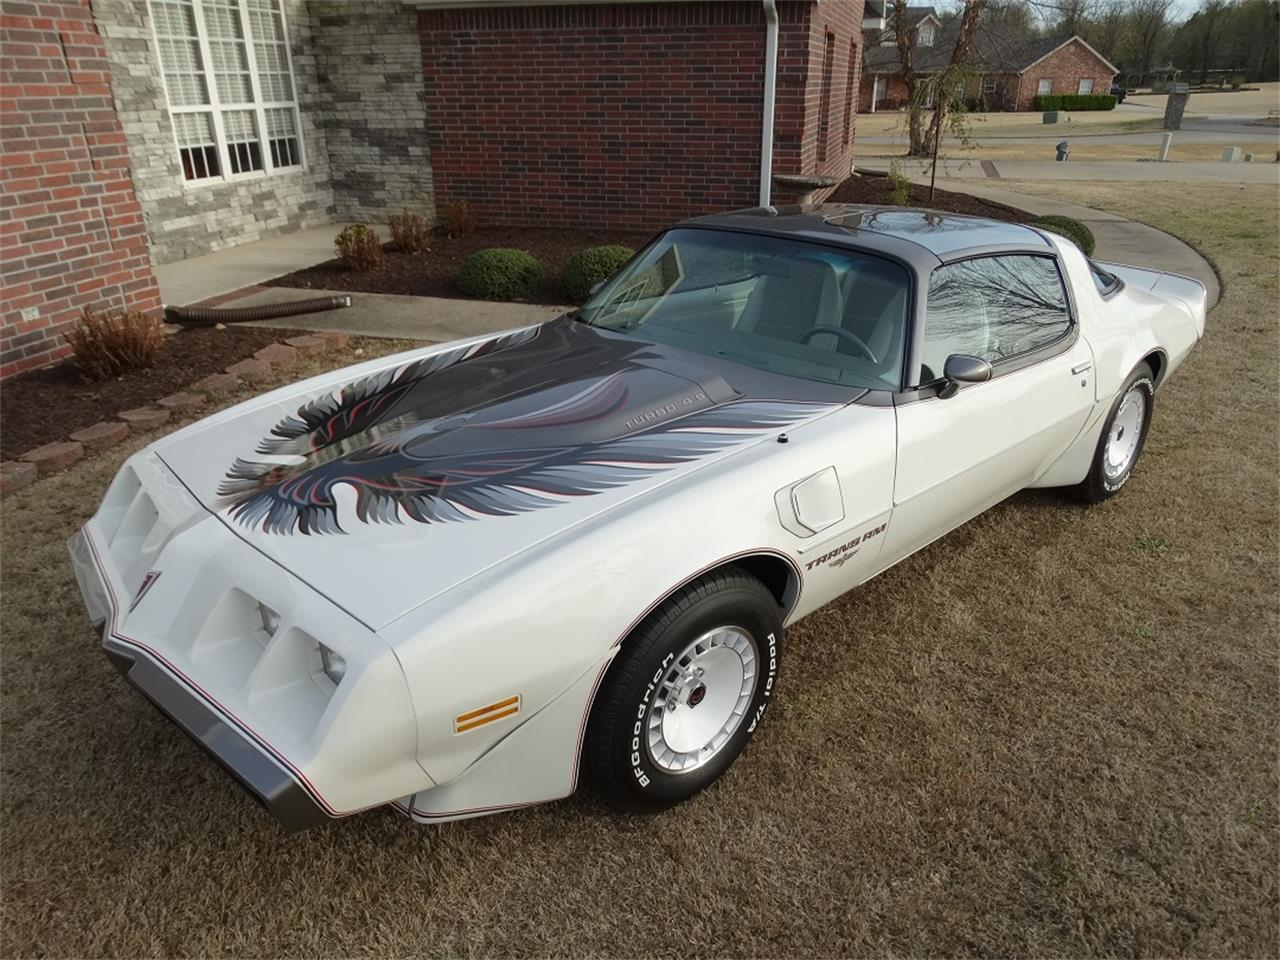 Large Picture of '80 Firebird Trans Am located in Arkansas - $32,900.00 Offered by a Private Seller - N8ME